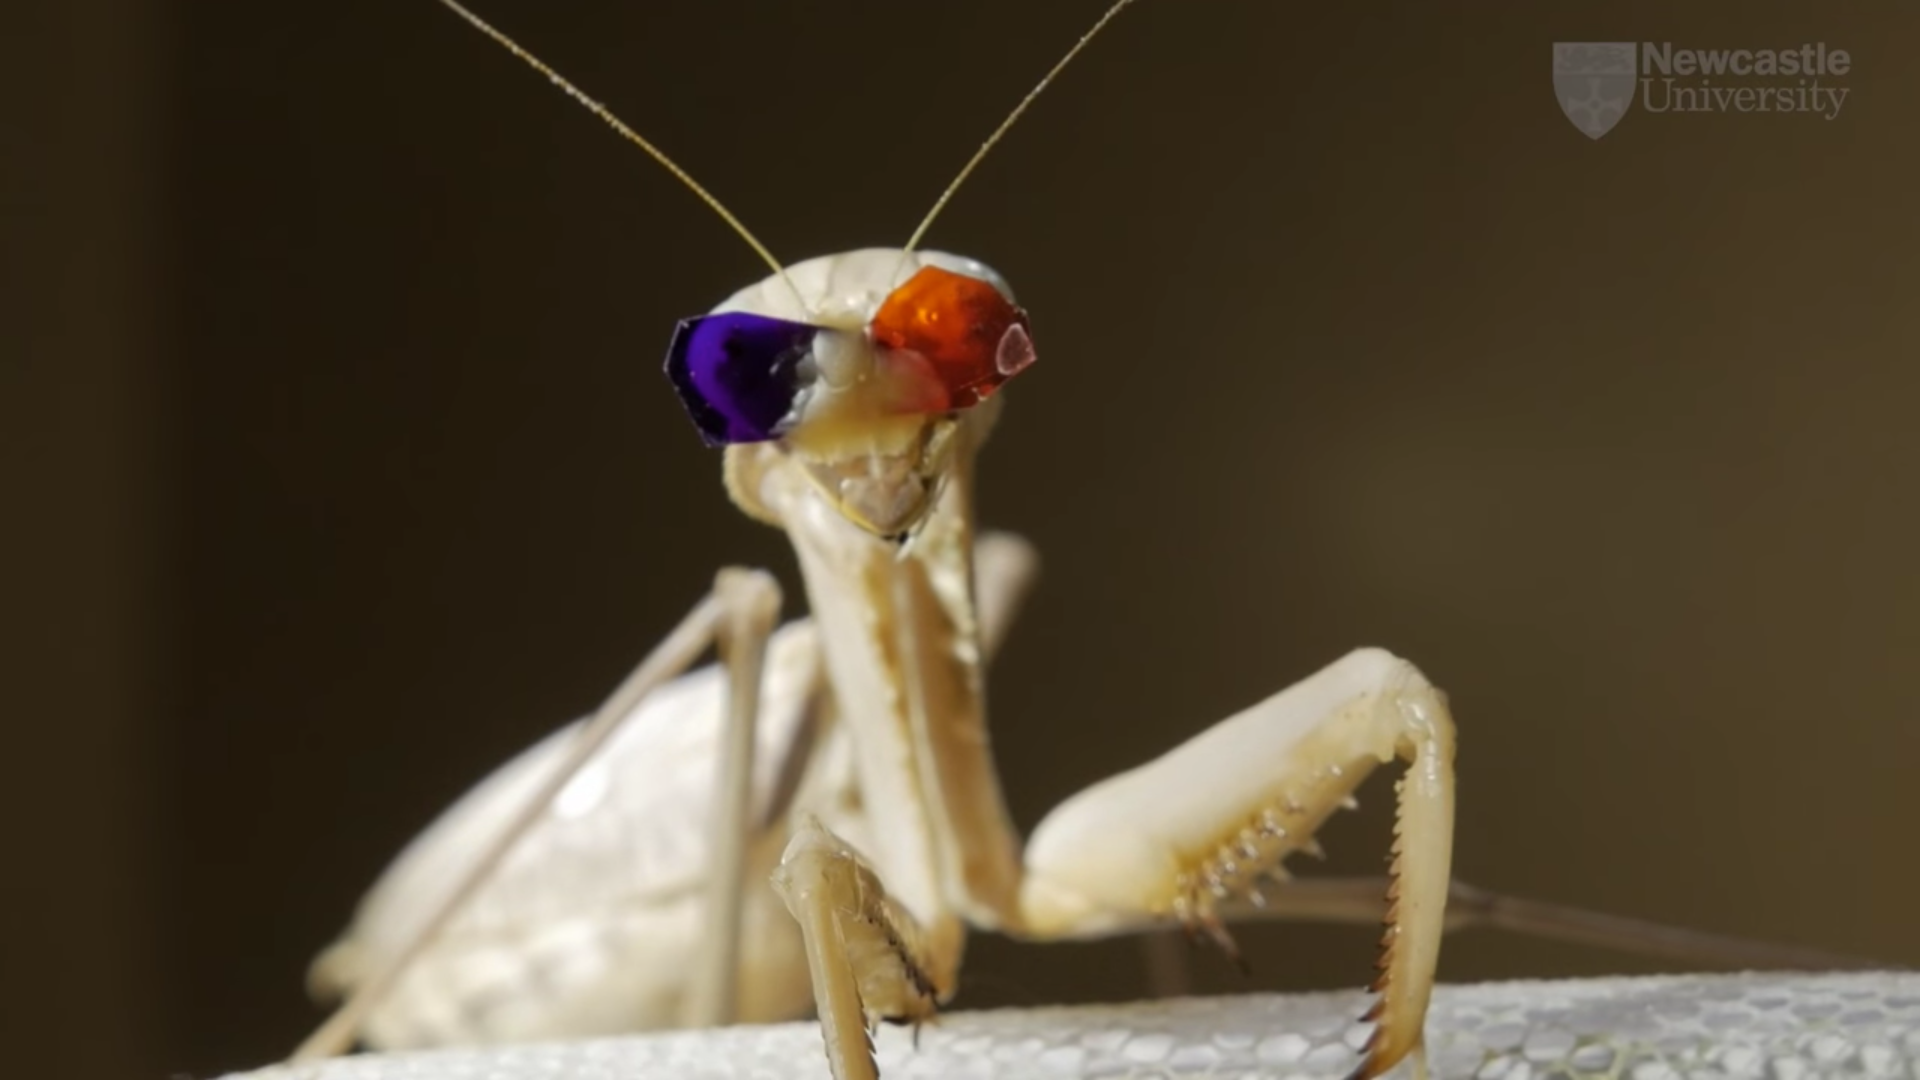 Praying Mantises Have A Completely Different Way Of Seeing In 3D